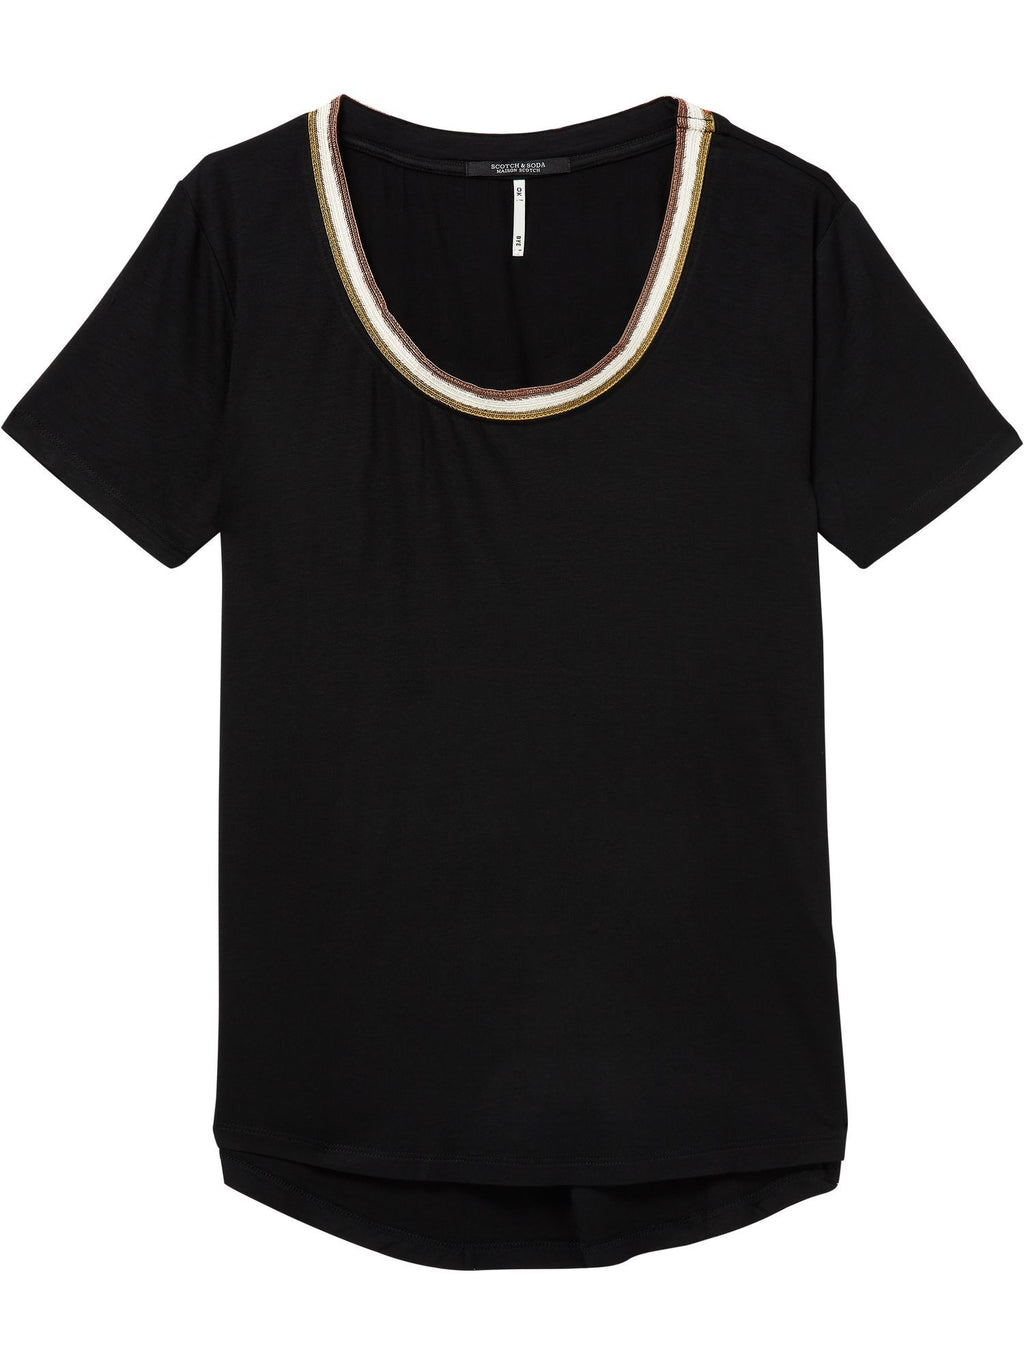 SCOTCH AND SODA - Striped Neckline Tee online at PAYA boutique